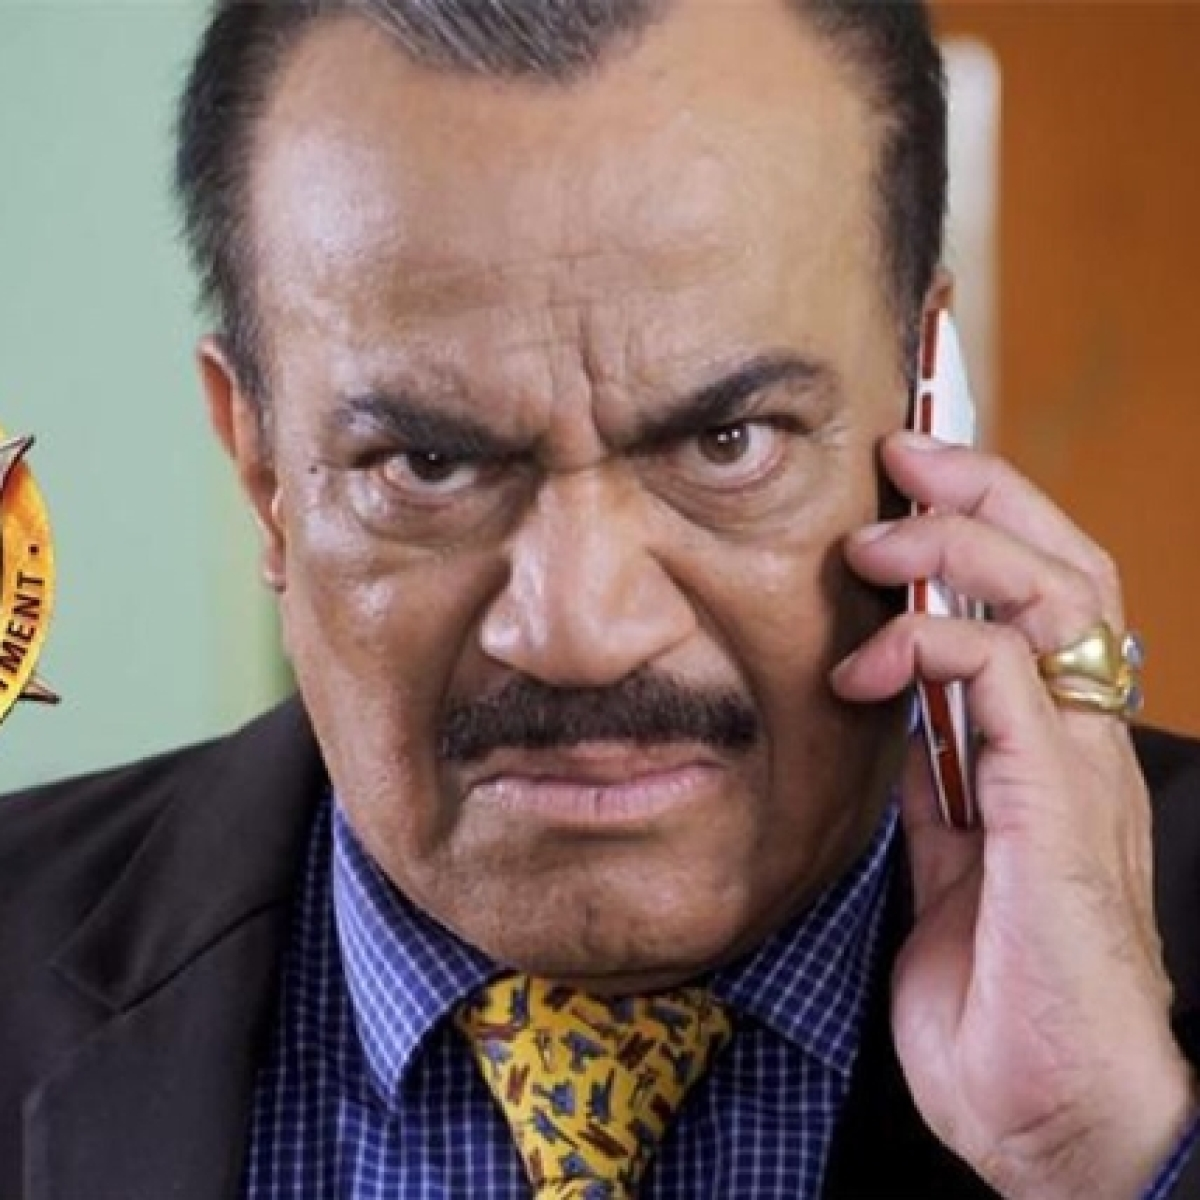 Kuch toh gadbad hai: This CID episode predicted COVID-19 pandemic in 2013